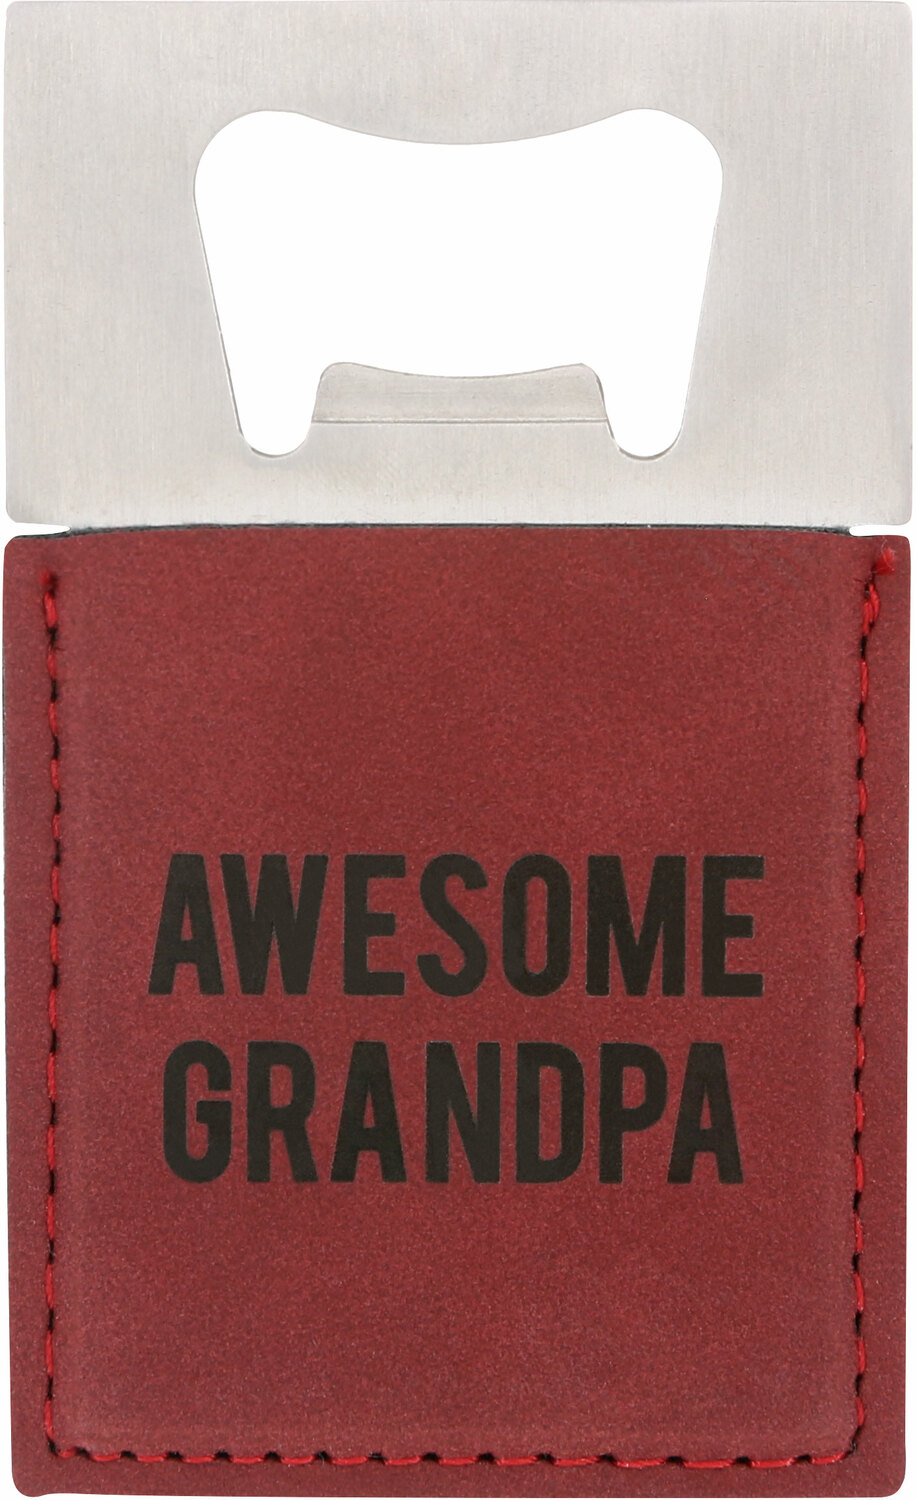 "Awesome Grandpa by Man Made - Awesome Grandpa - 2"" x 3.5"" Bottle Opener Magnet"